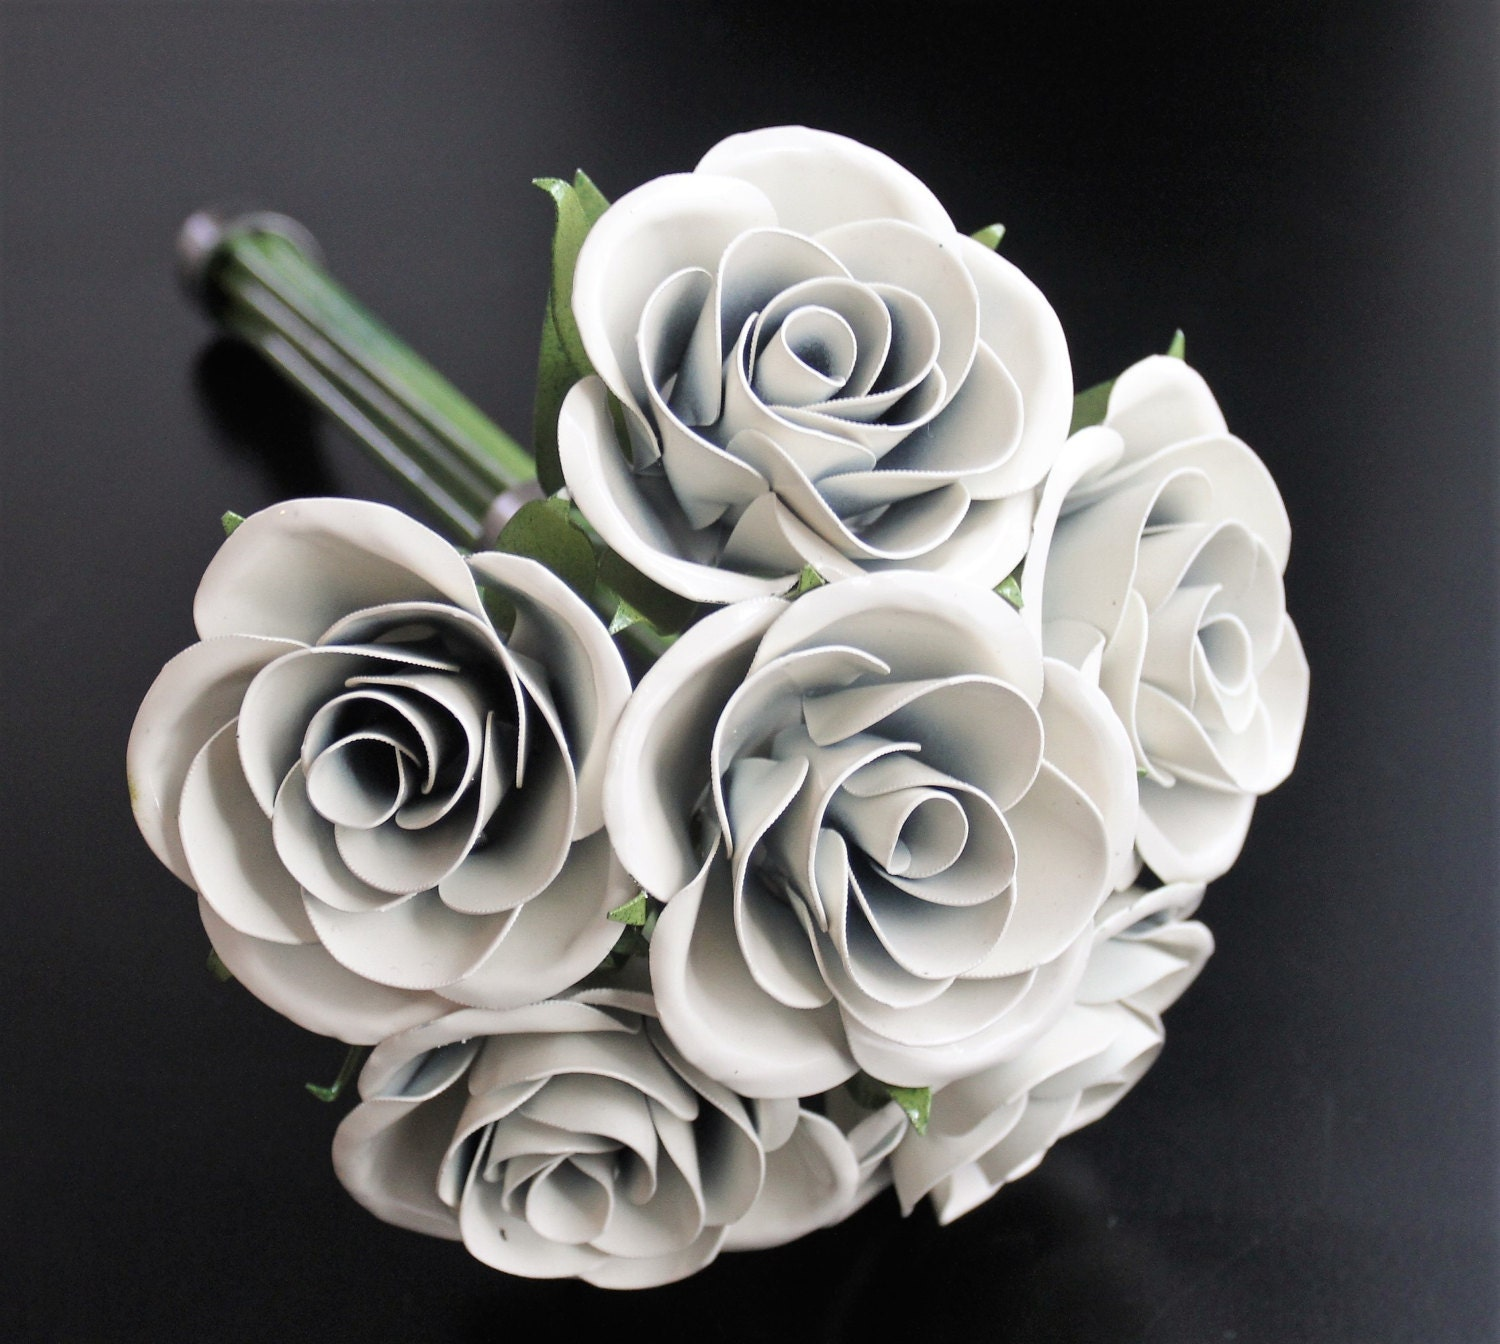 Metal rose wedding bouquet bridal bouquet rose bridal bouquet metal rose wedding bouquet bridal bouquet rose bridal bouquet metal rose wedding flowers bridesmaid bouquet wedding flowers izmirmasajfo